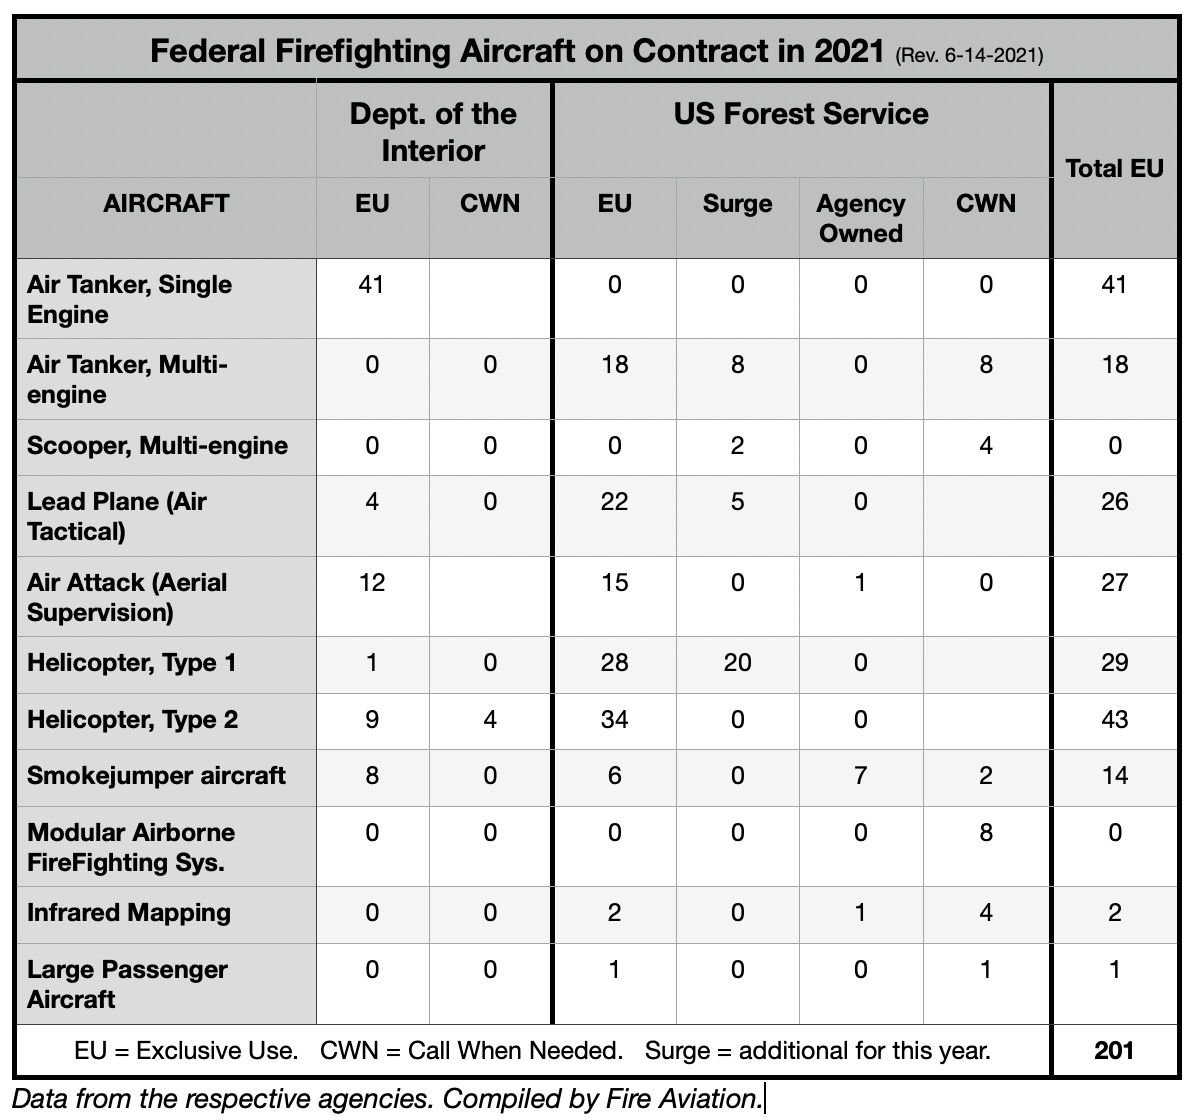 Federal fire aircraft on contract, 2021